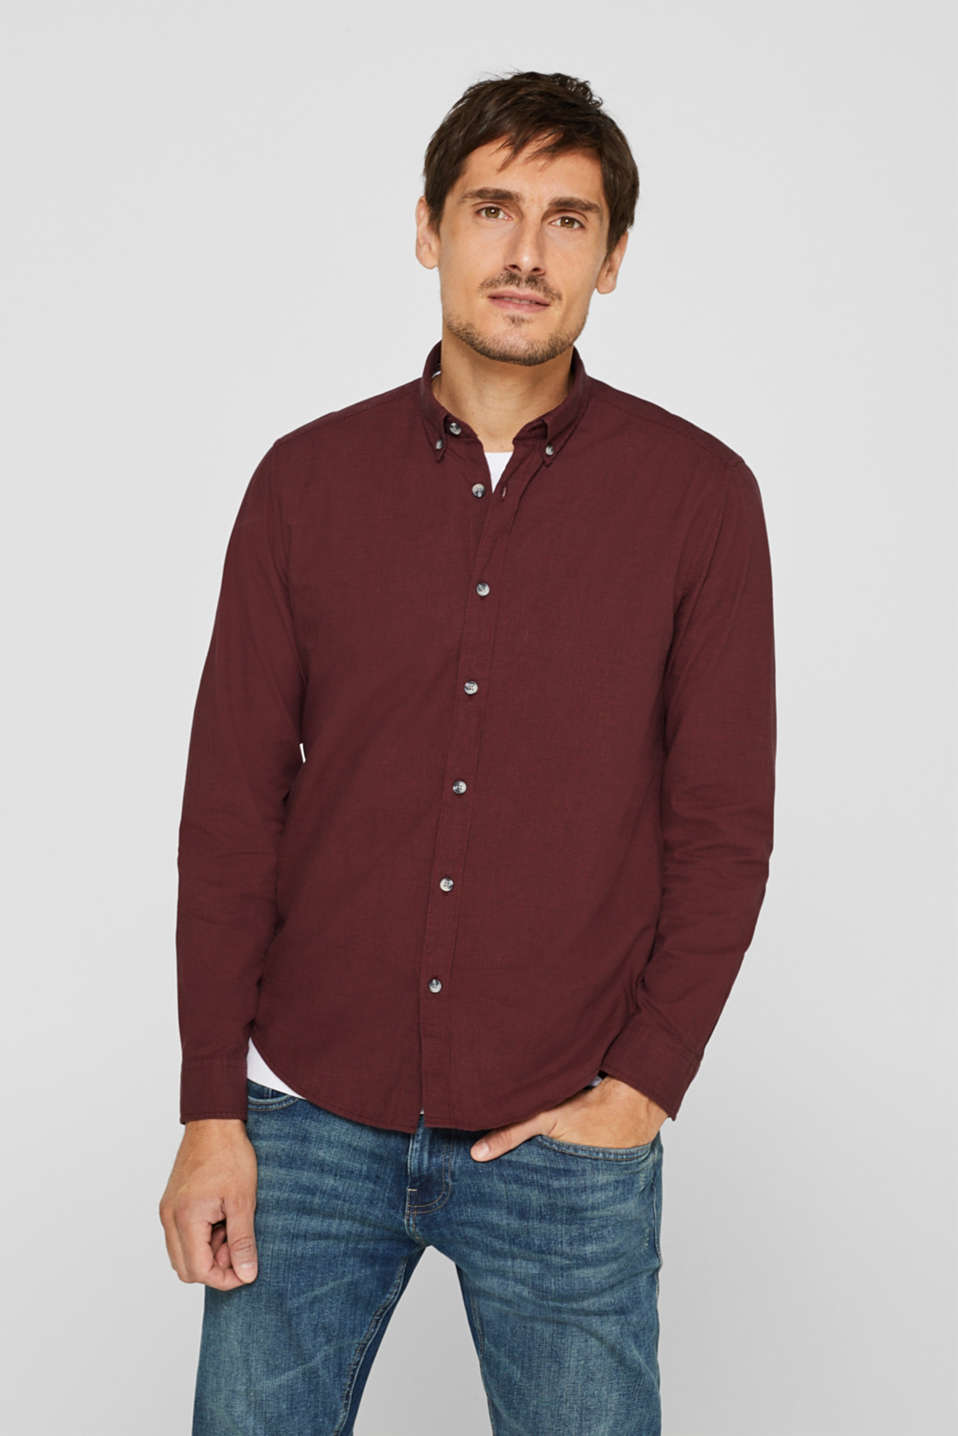 Esprit - Shirt with a mini gingham check pattern, 100% cotton